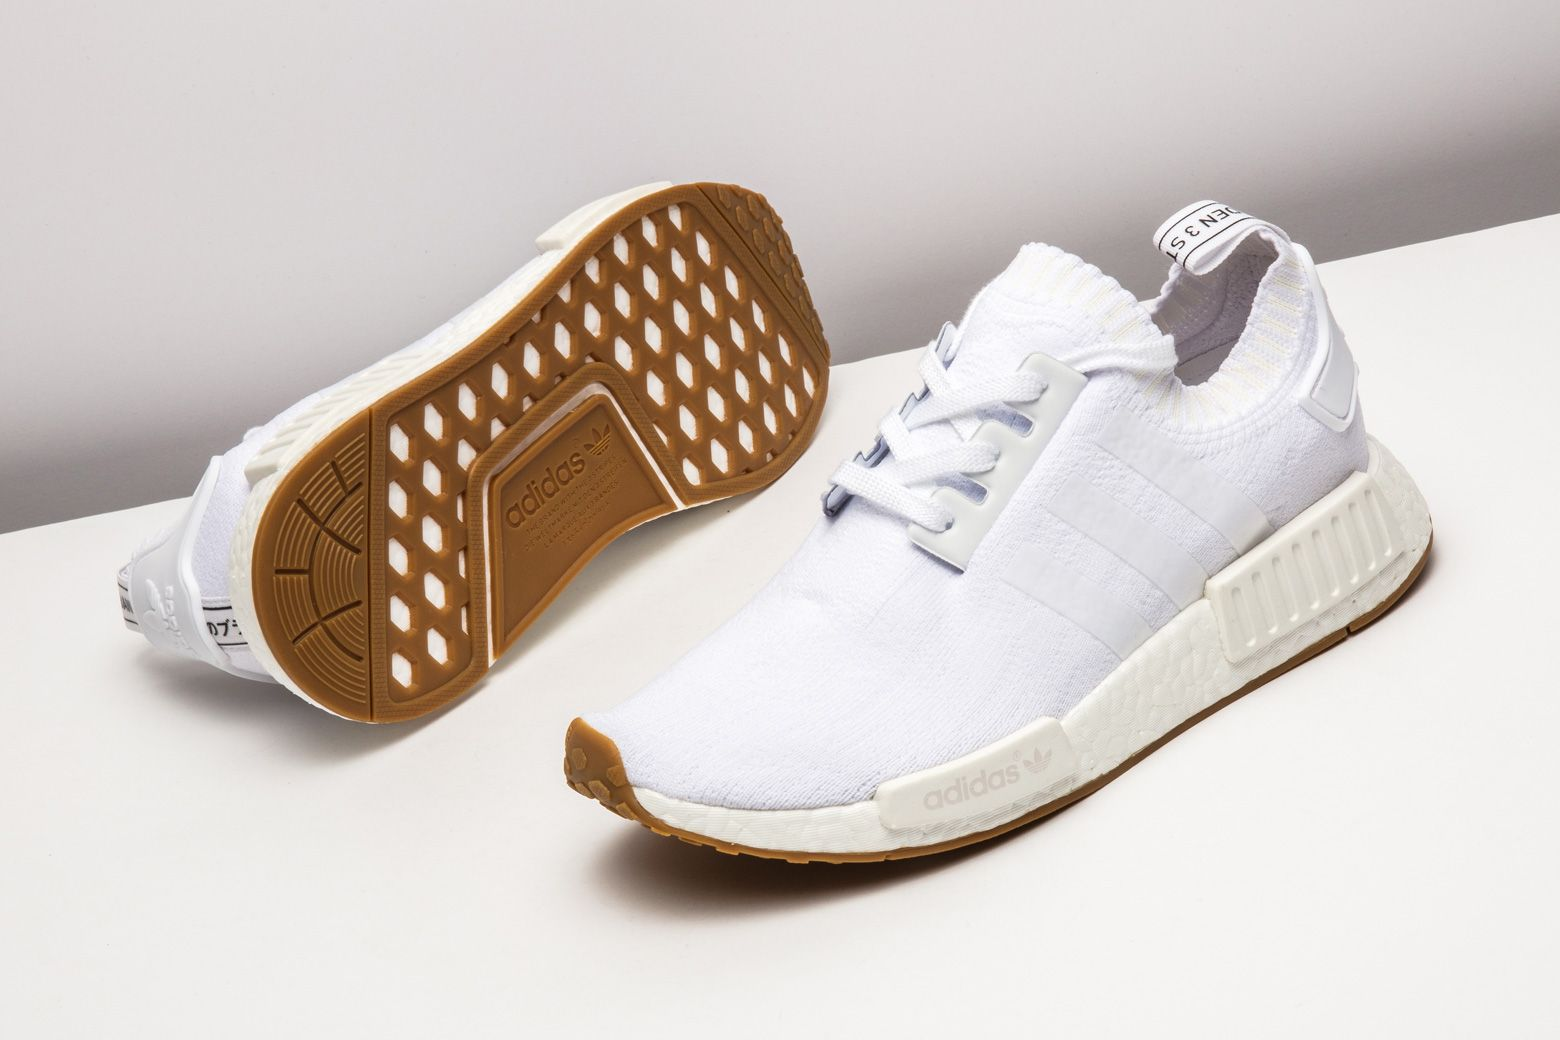 724316991 adidas keeps it clean with a pristine white upper and gum sole on this NMD  Primeknit